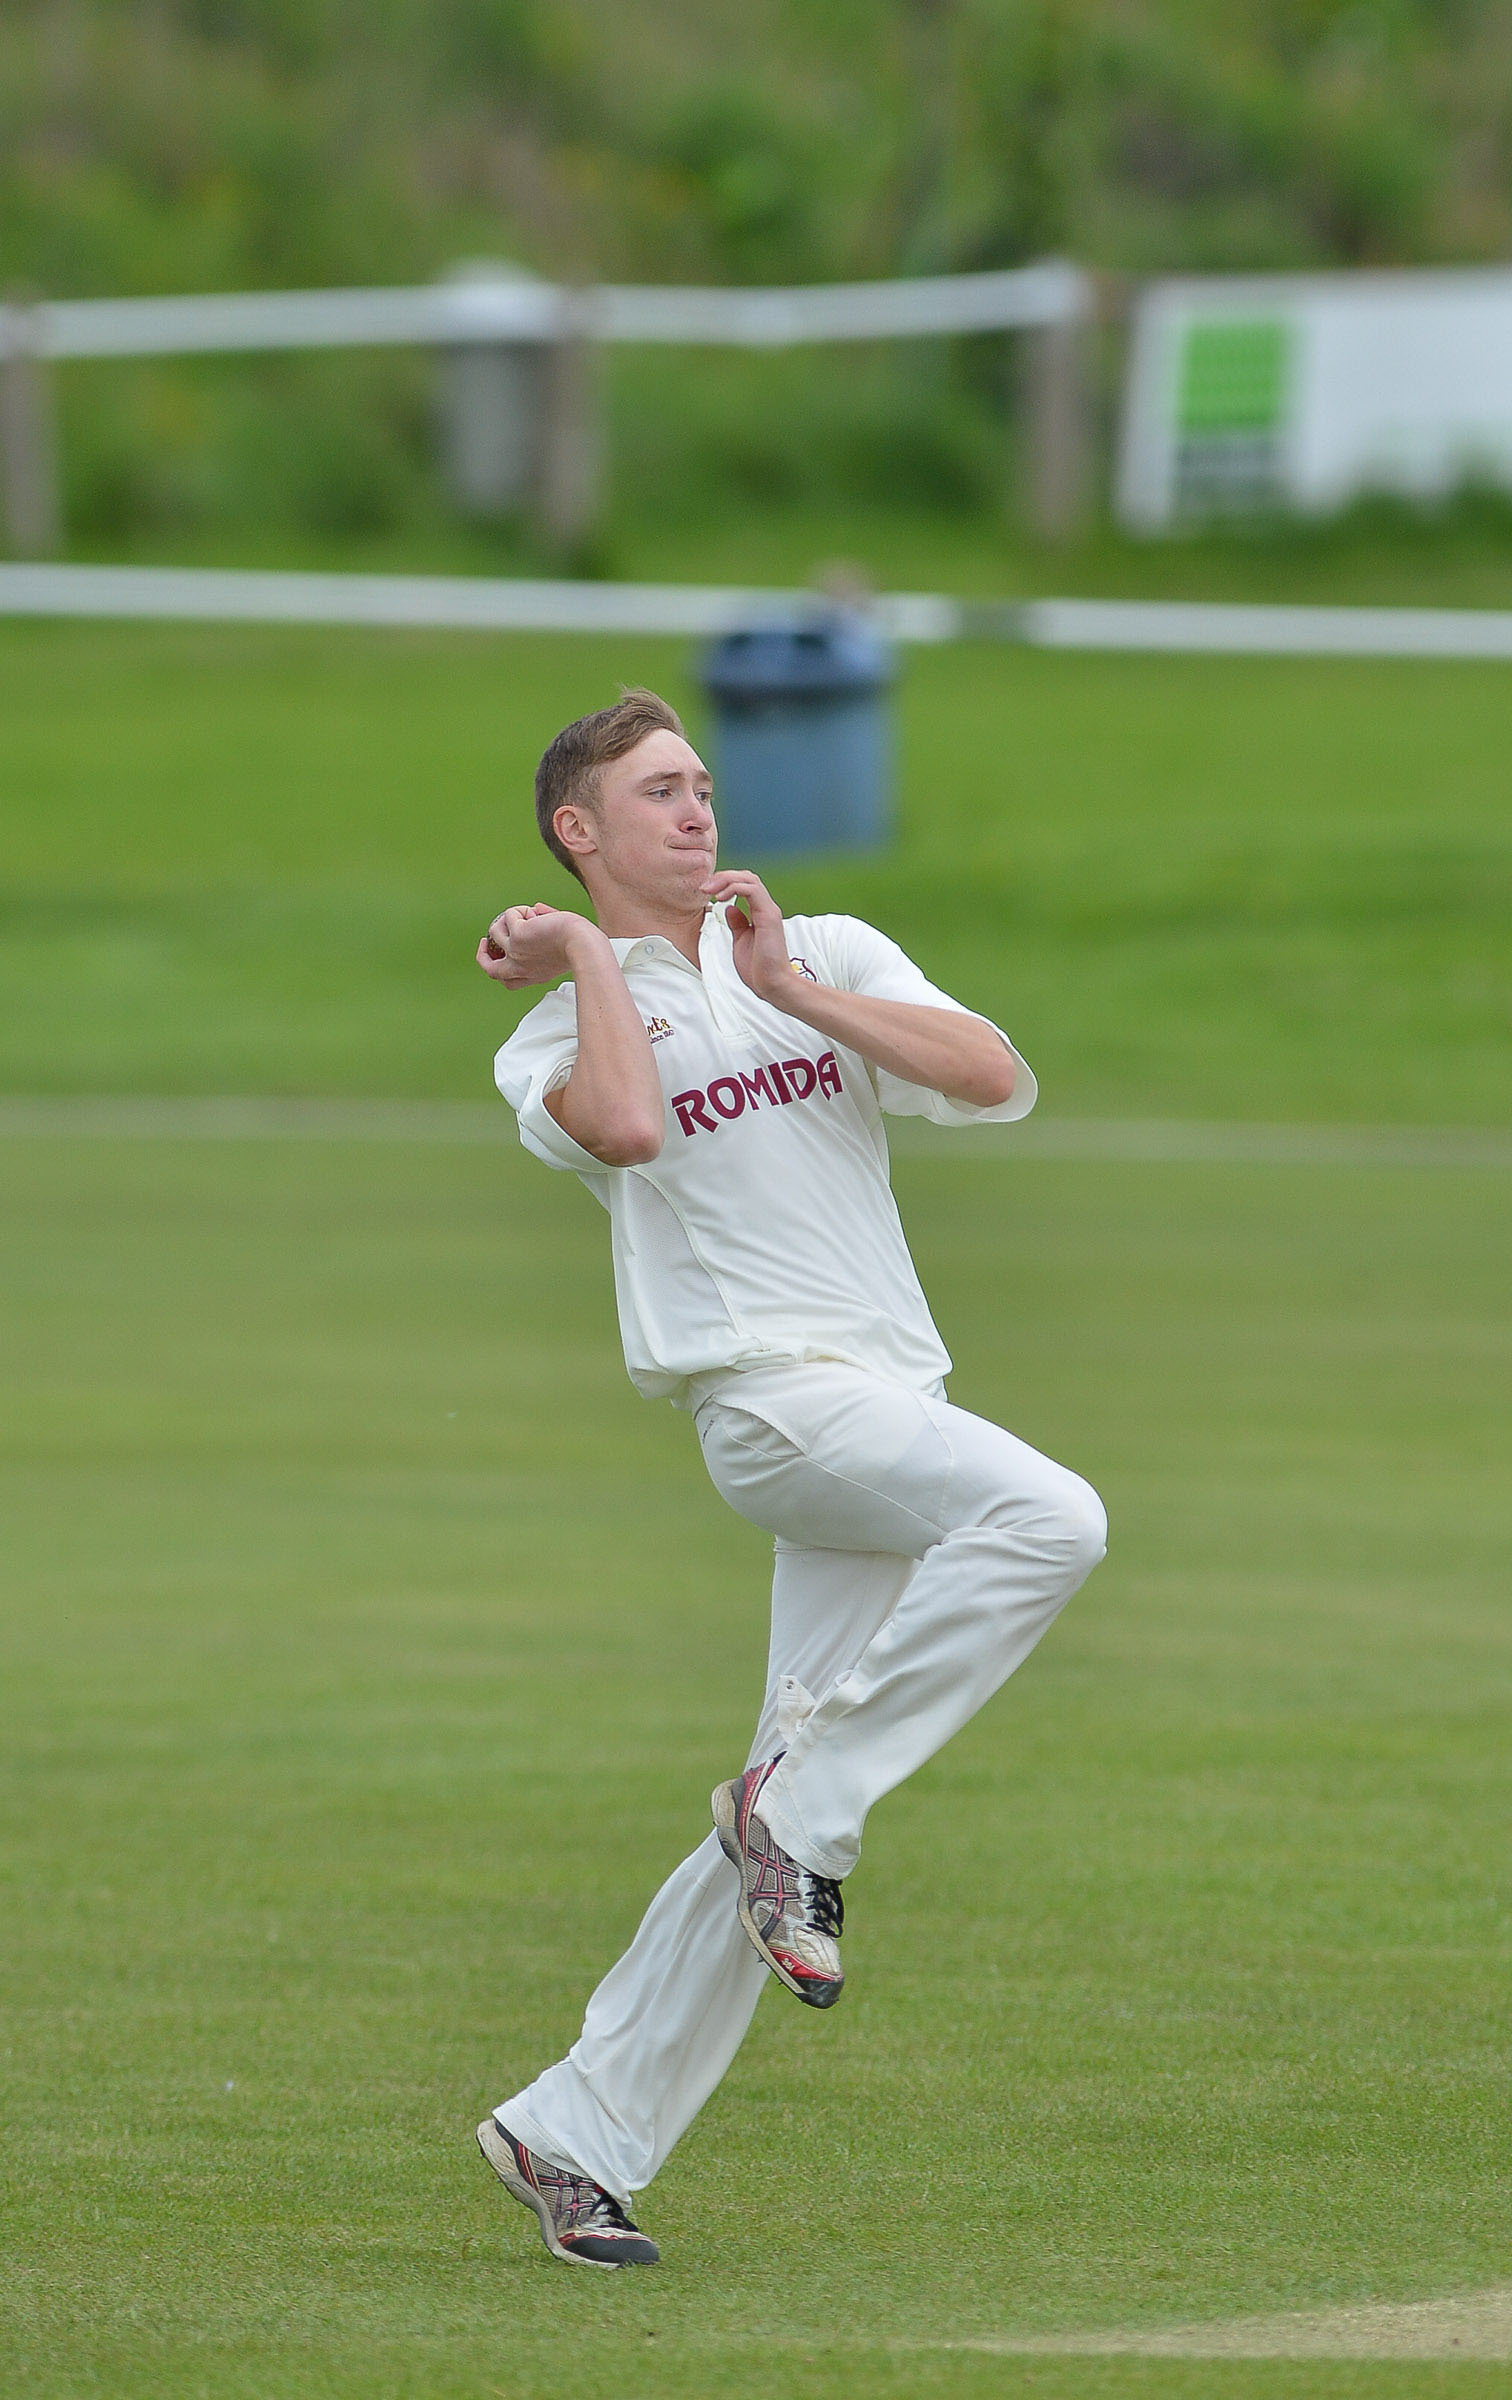 Elliot Richardson impressed with the bat for Buttershaw St Paul's